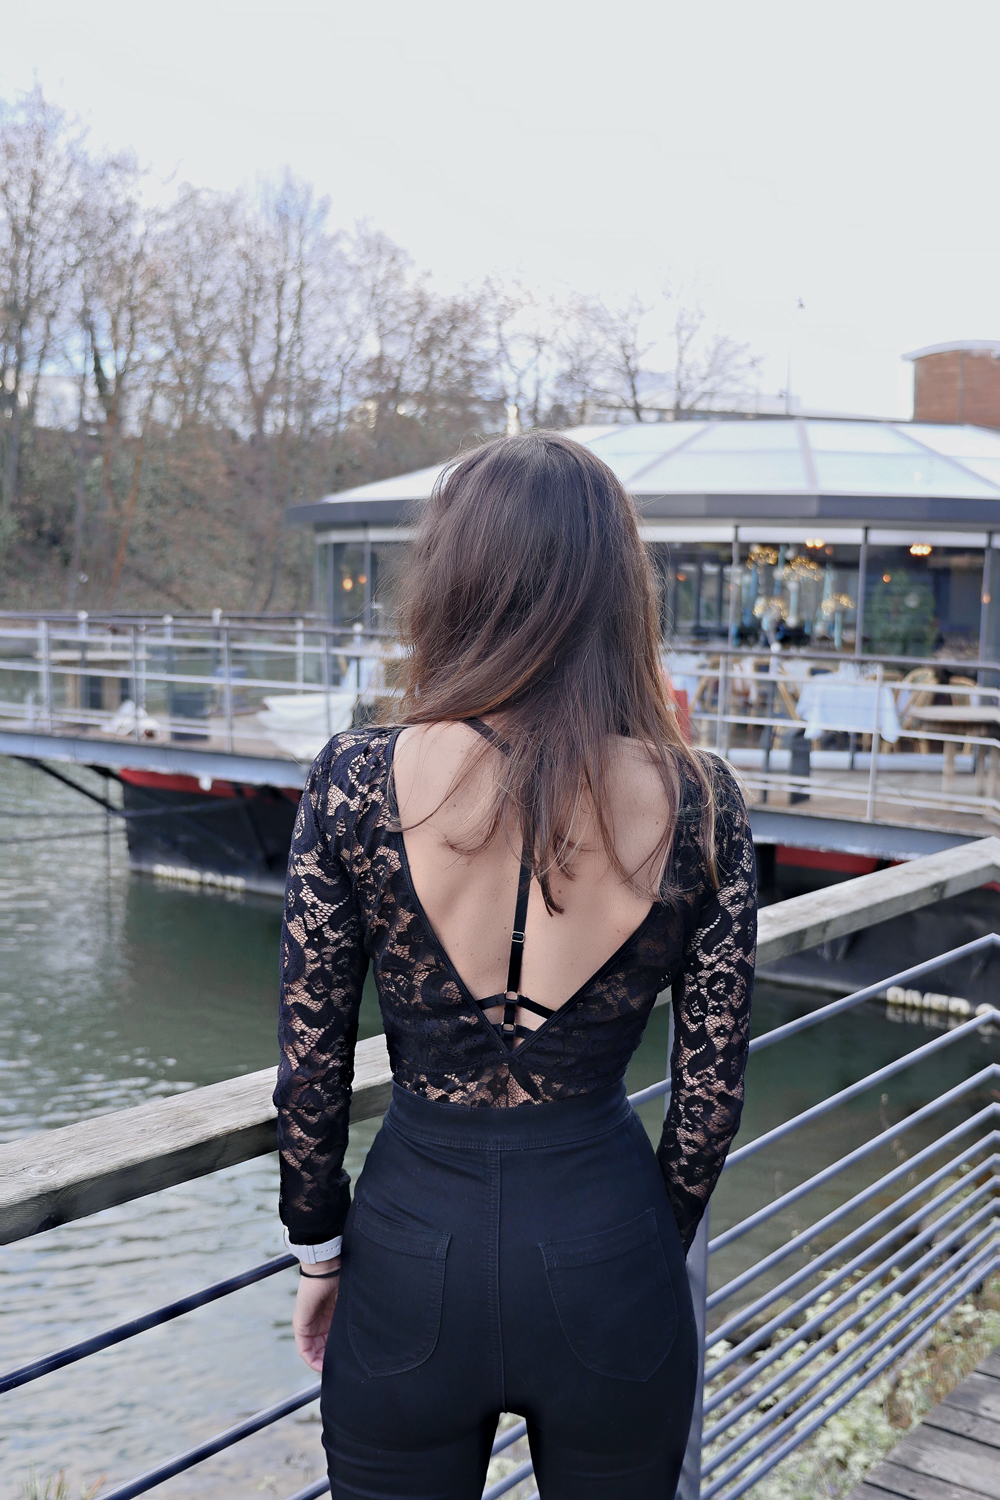 marieluvpink-blog-mode-rivers-cafe-issy-les-moulineaux-11